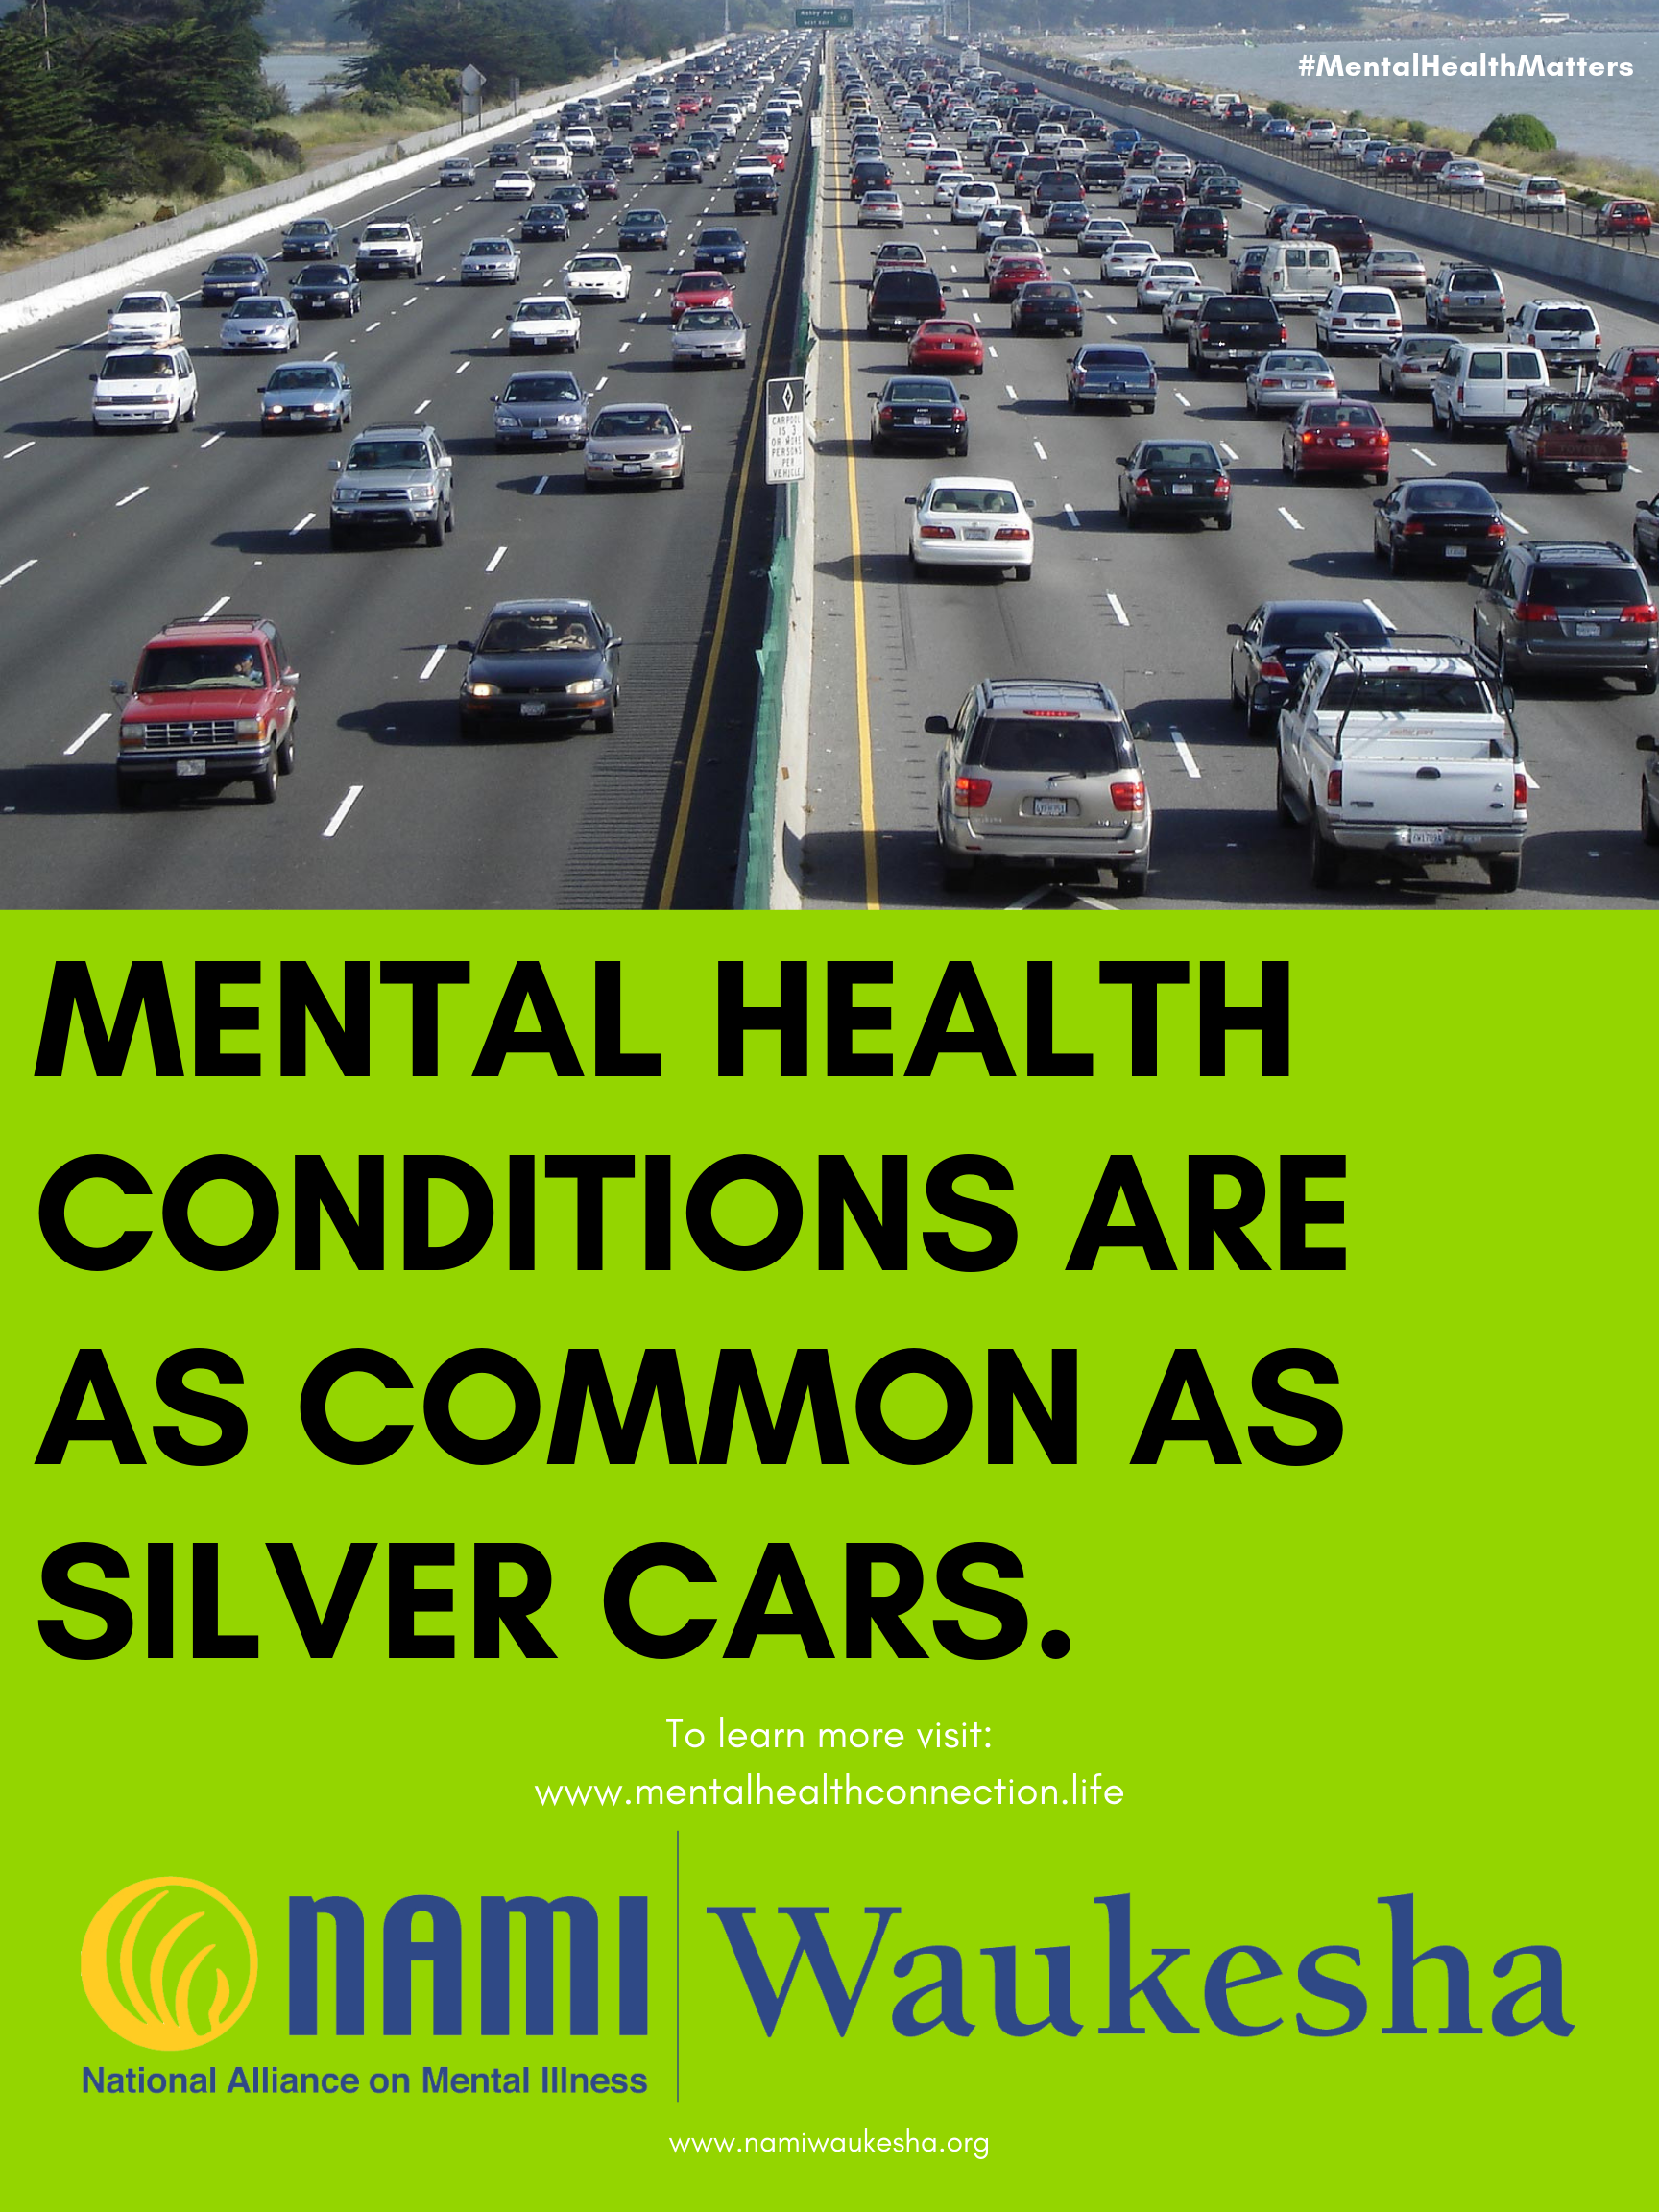 MNM_Green Rib - common as silver cars poster (1).png